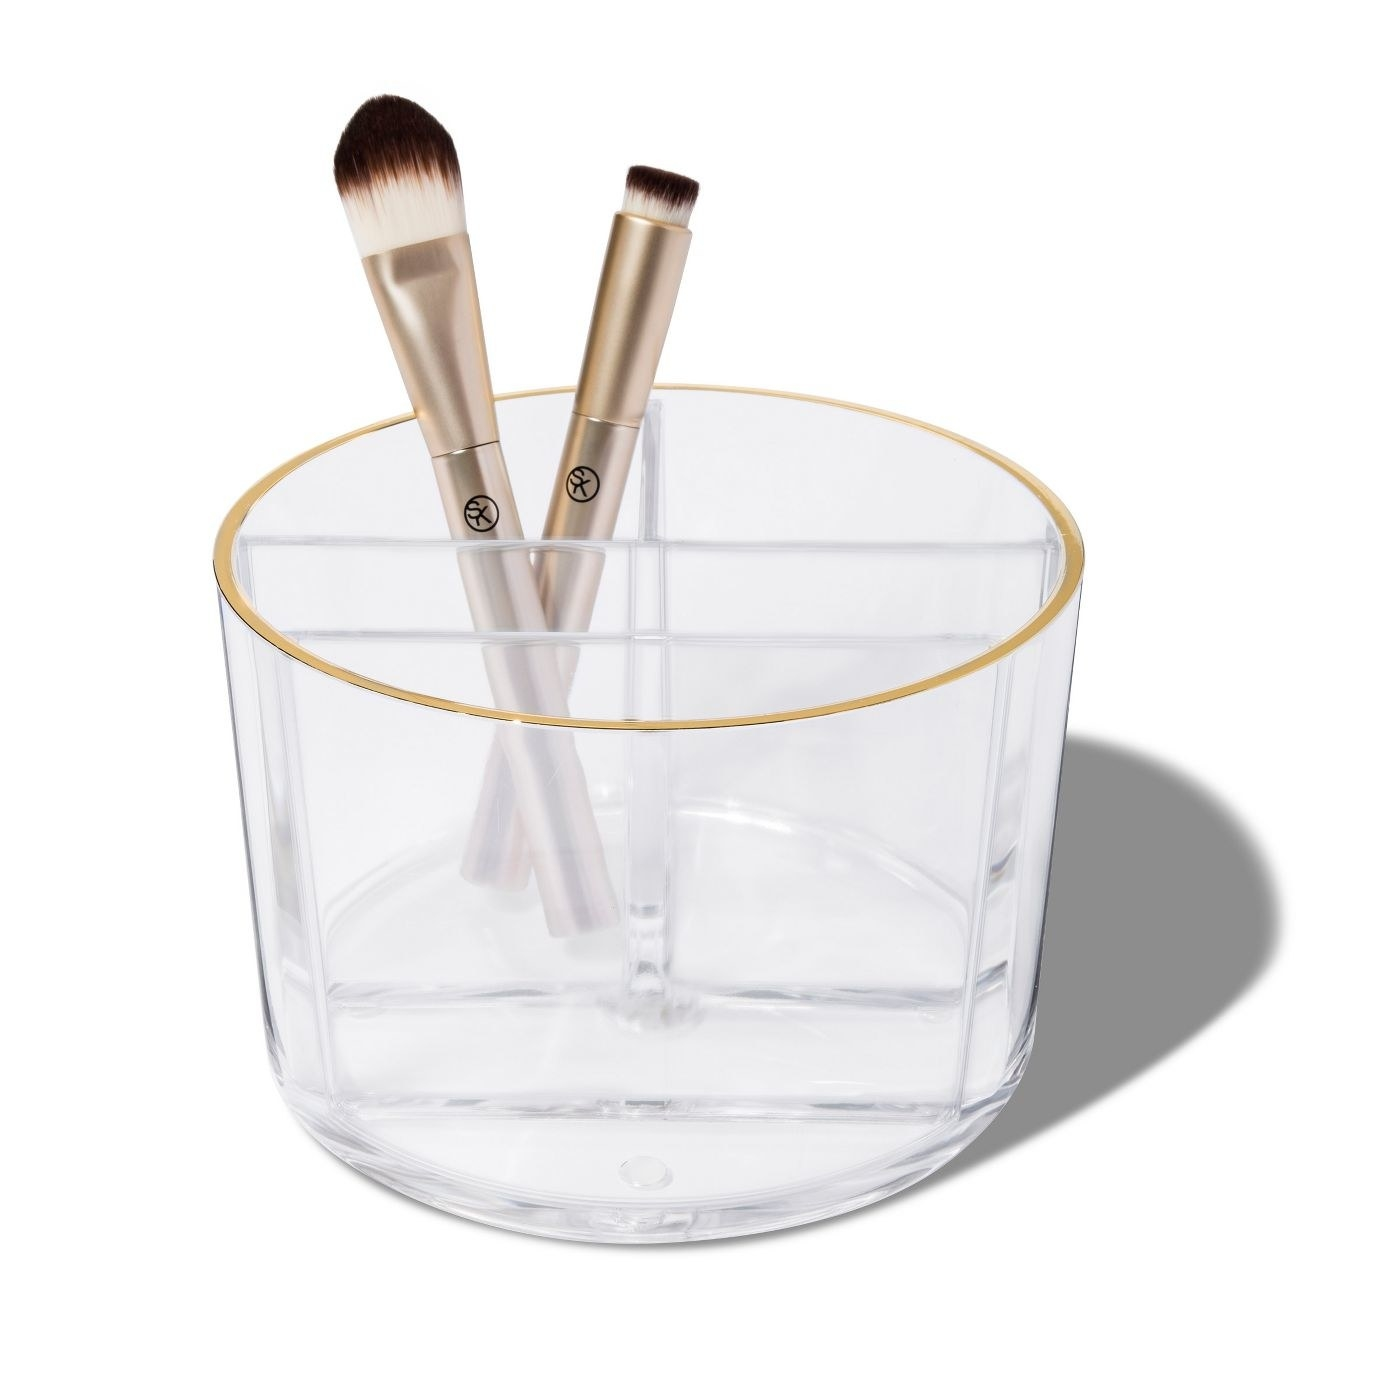 The clear makeup brush holder with gold rim